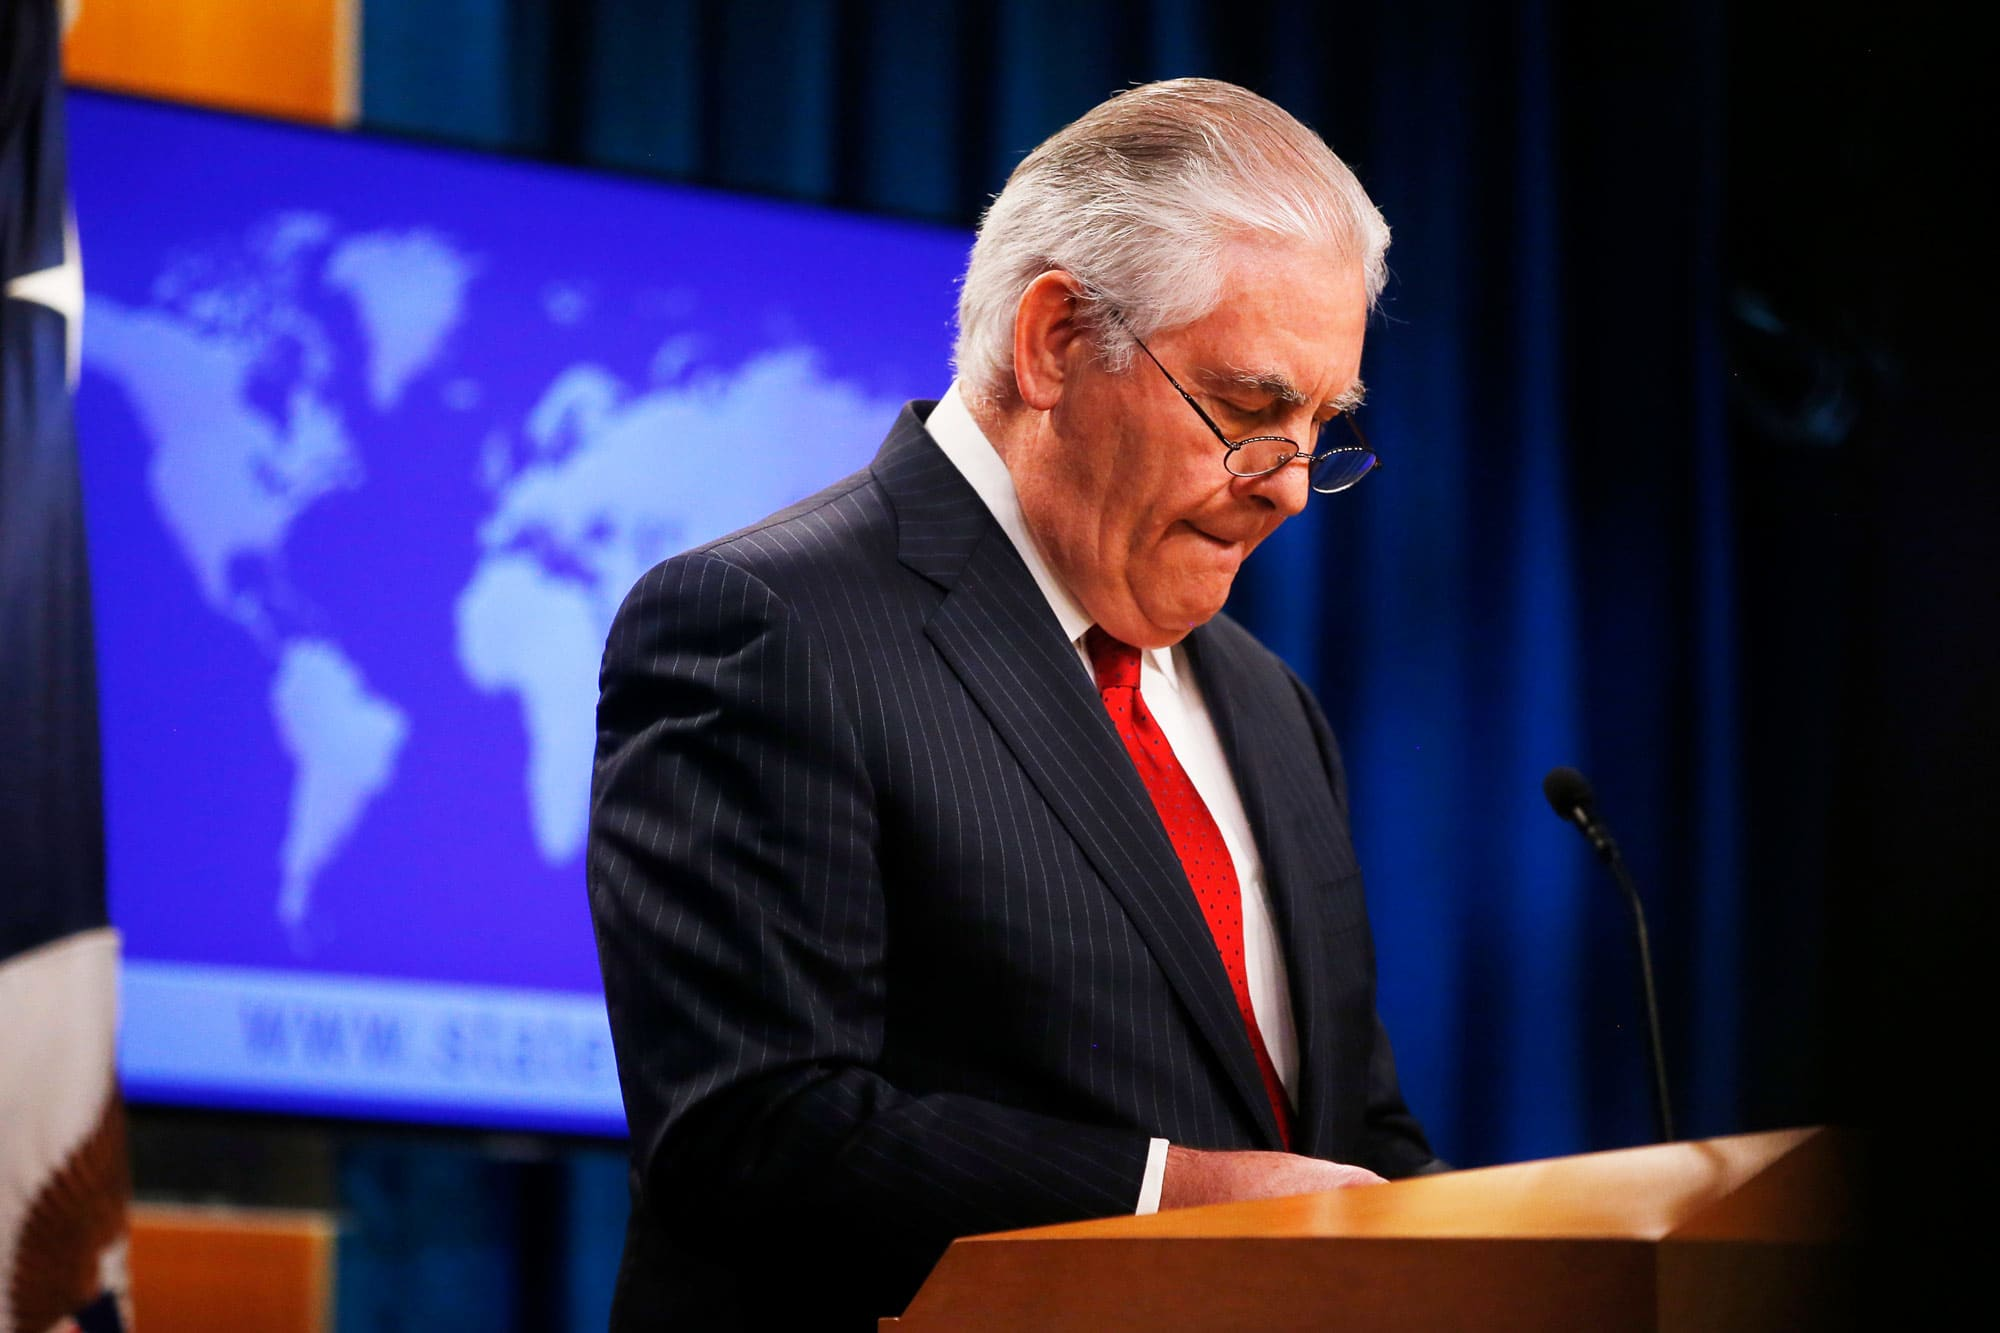 Tillerson will give up secretary of State duties at the end of the day